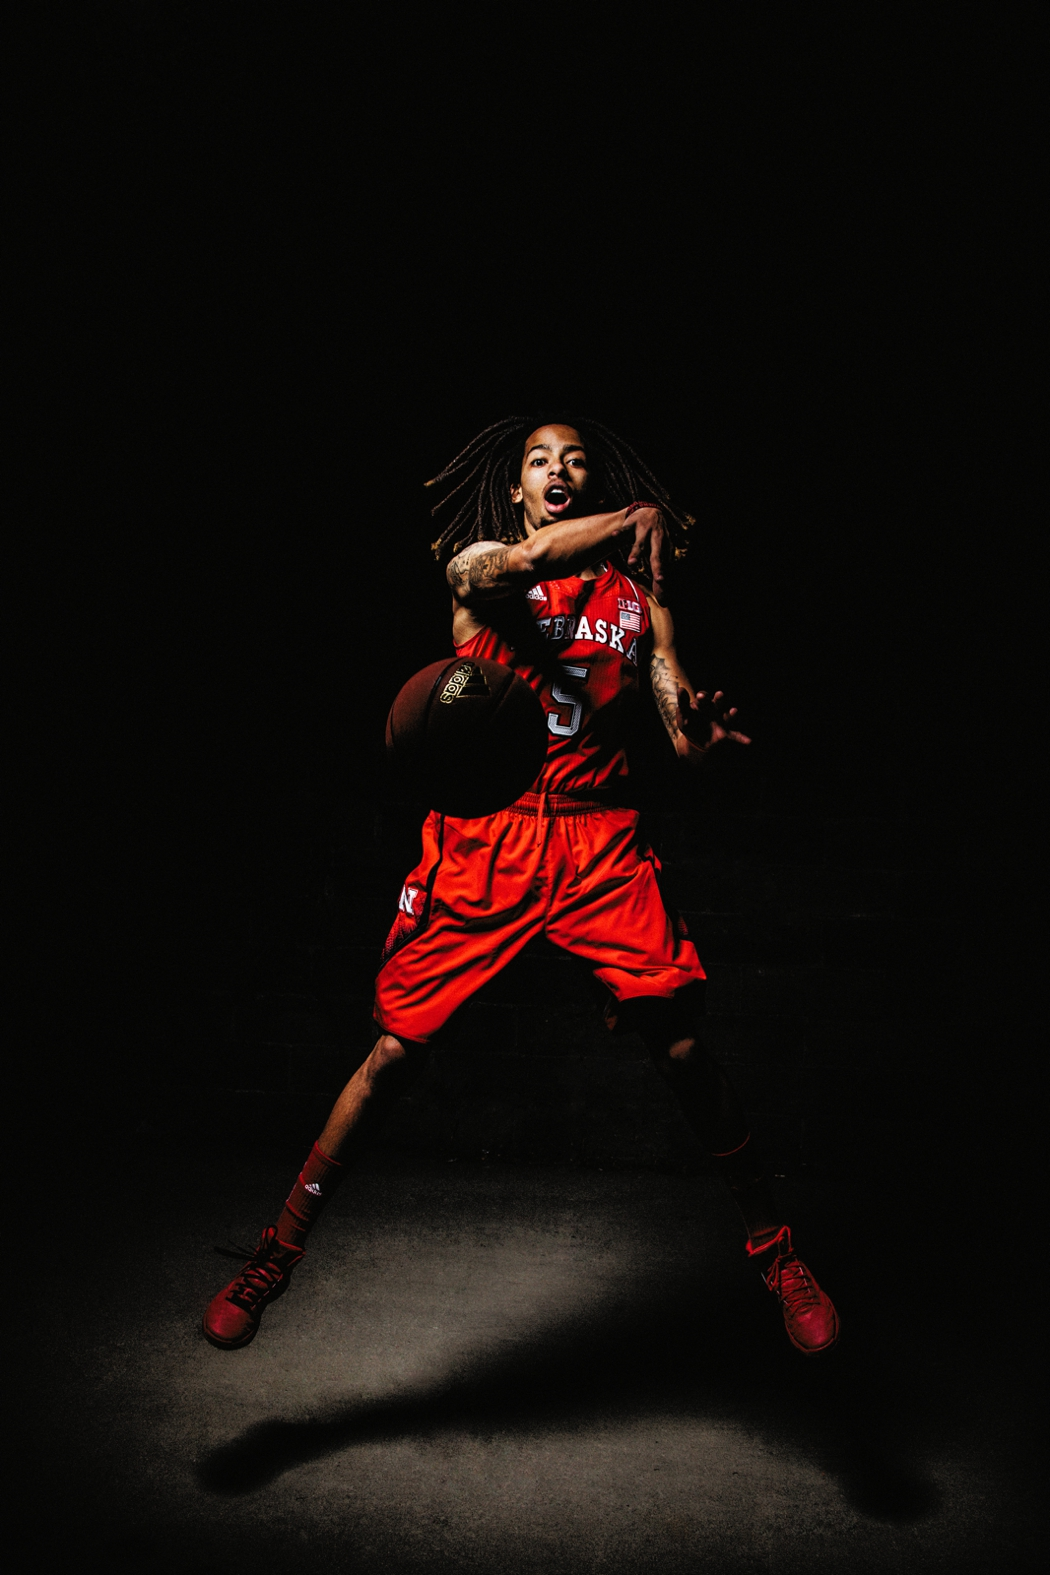 Basketball photography poses